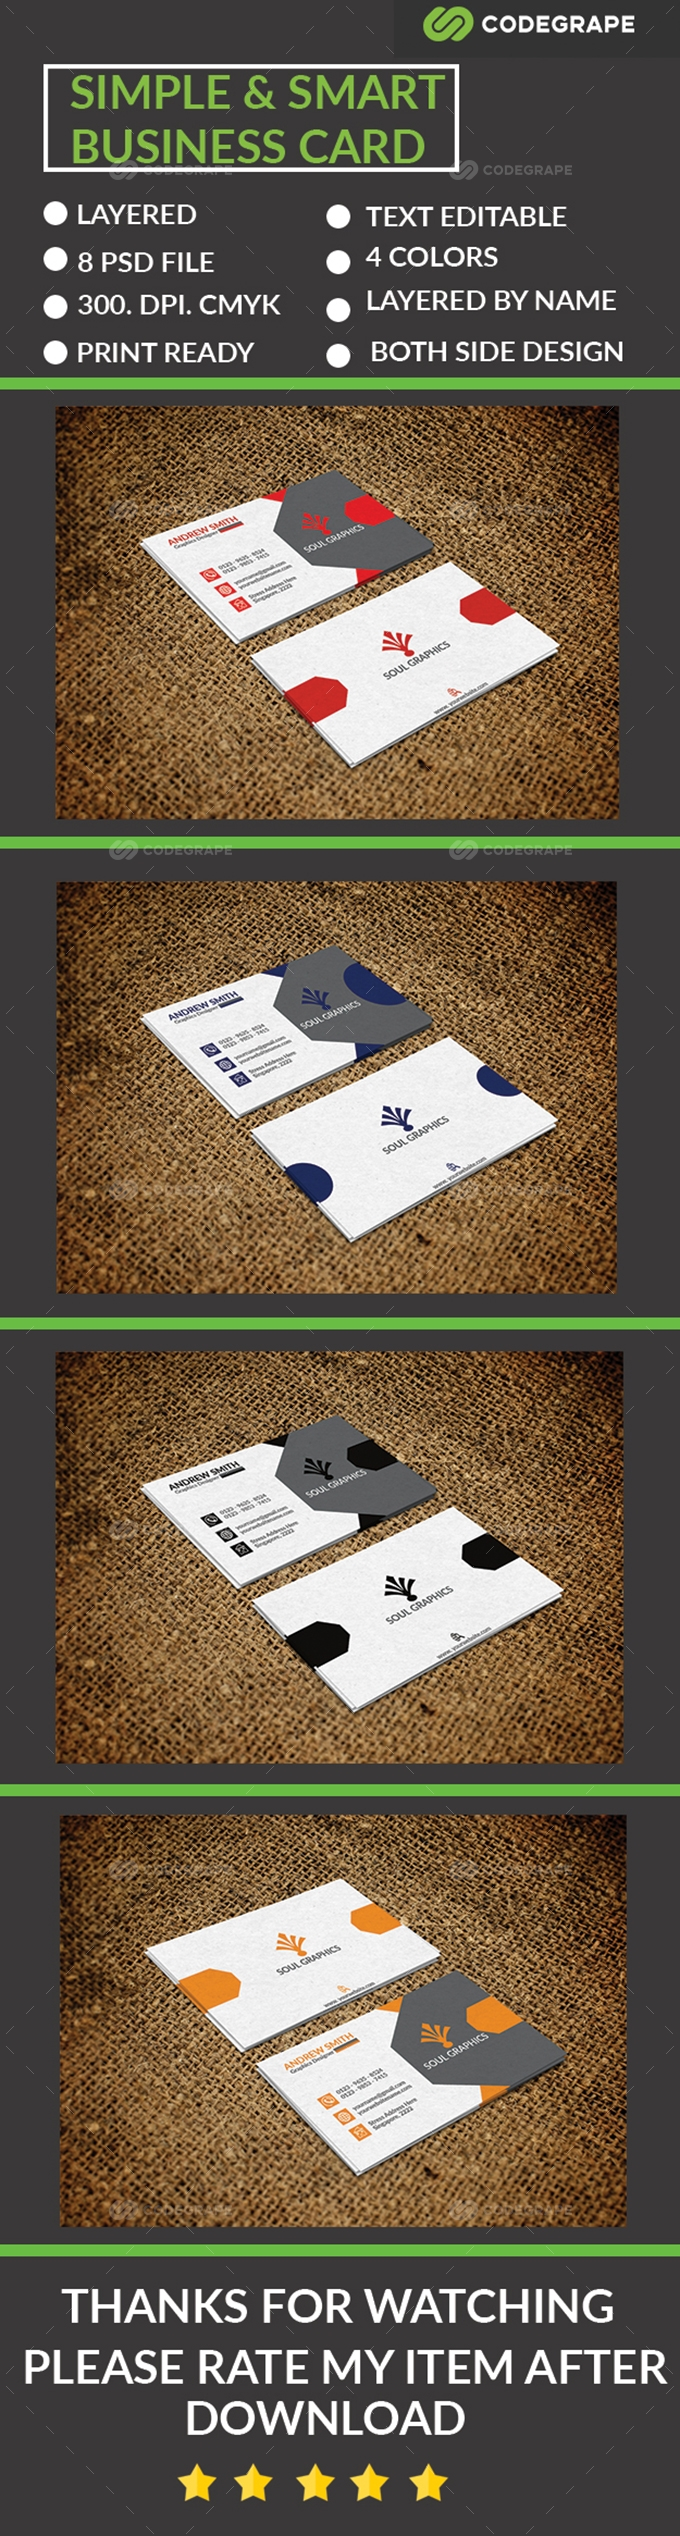 Simple & Smart Business Card